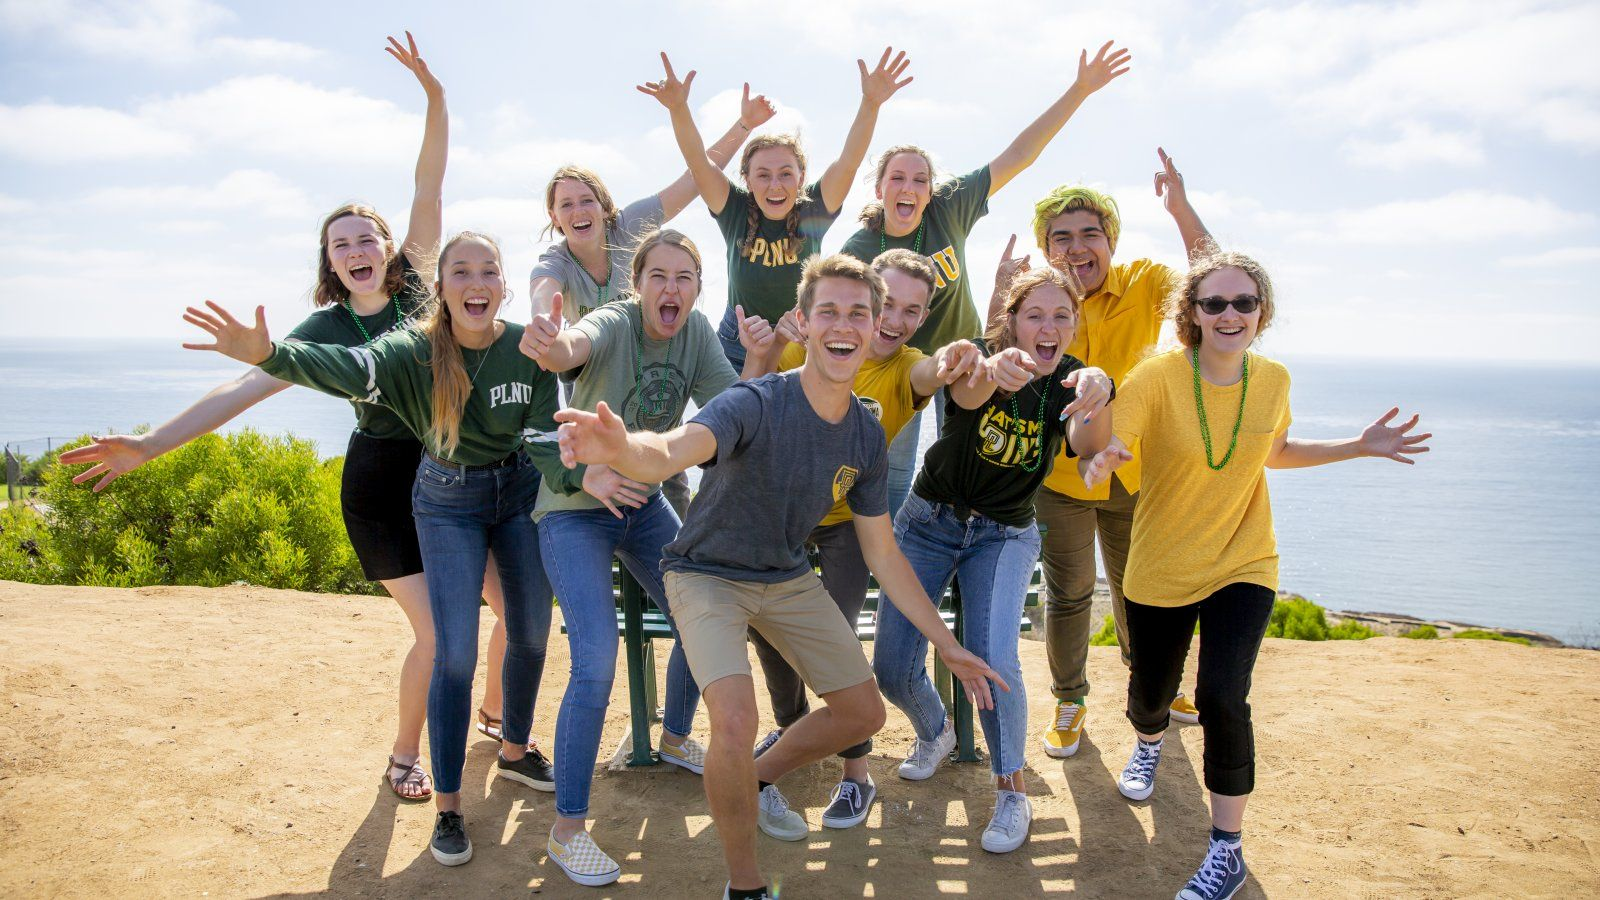 Group of PLNU students cheer and smile